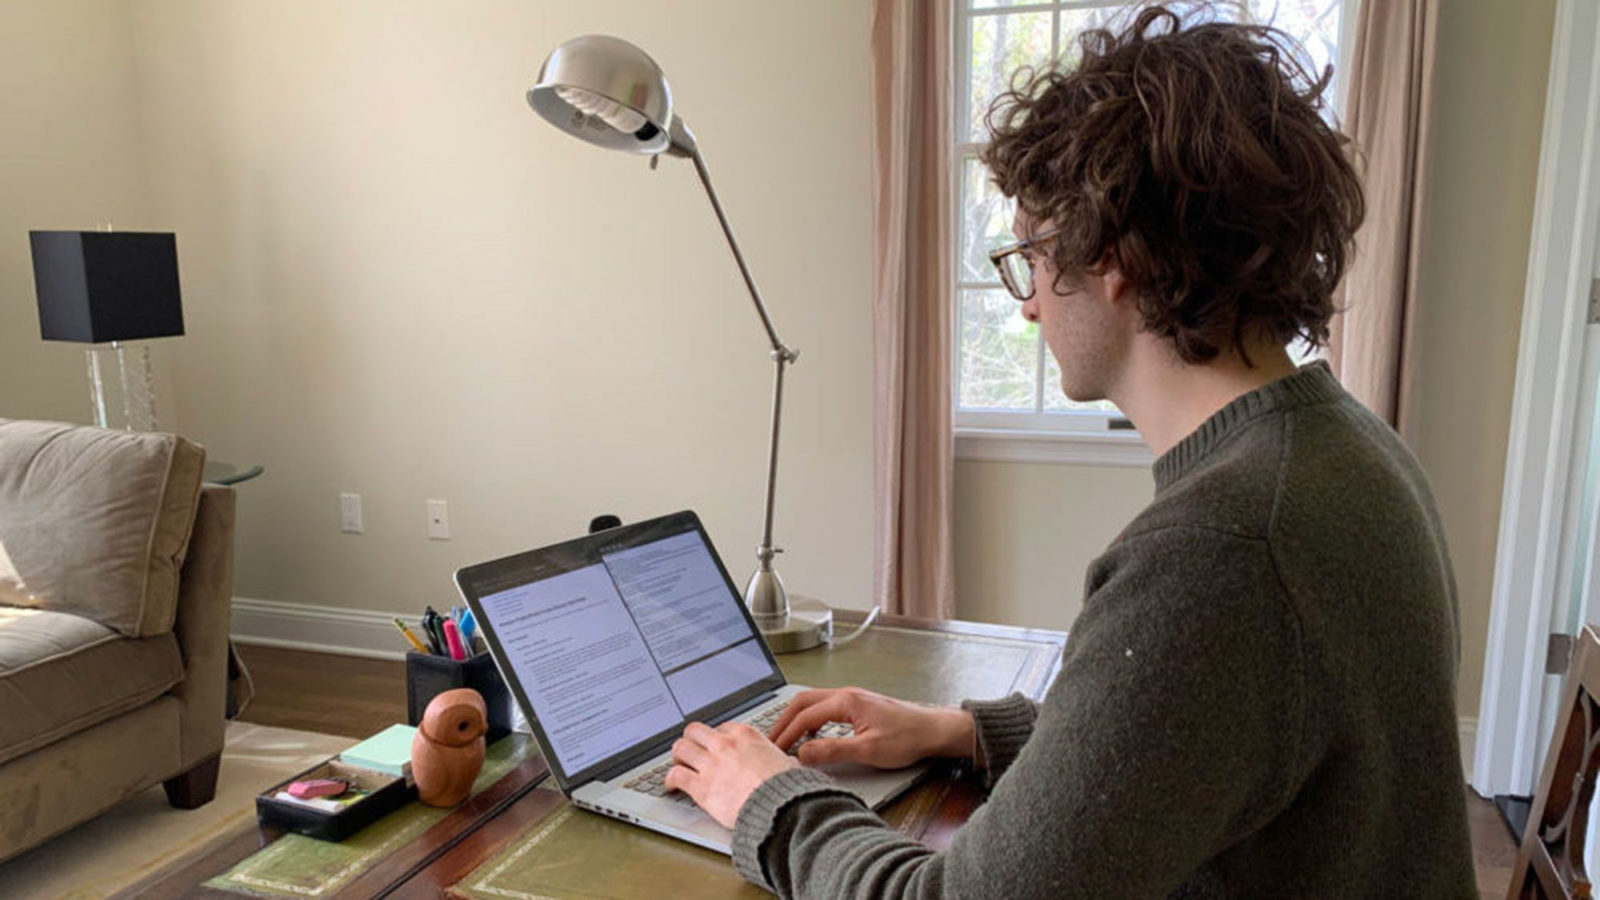 Adrian Hertel sits at a desk typing on his laptop.